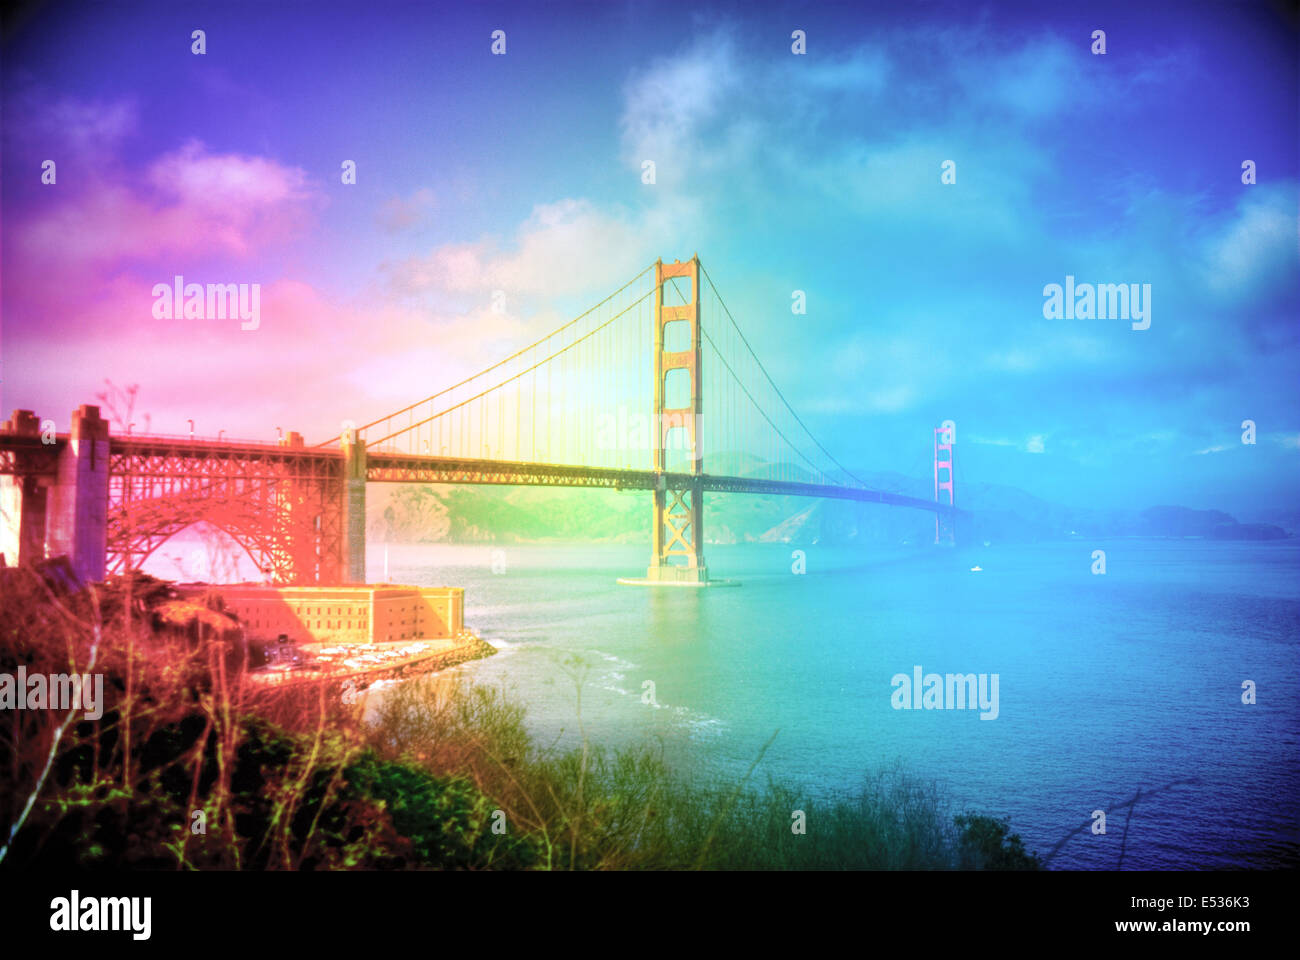 the golden gate bridge overlaid with a rainbow showing the open